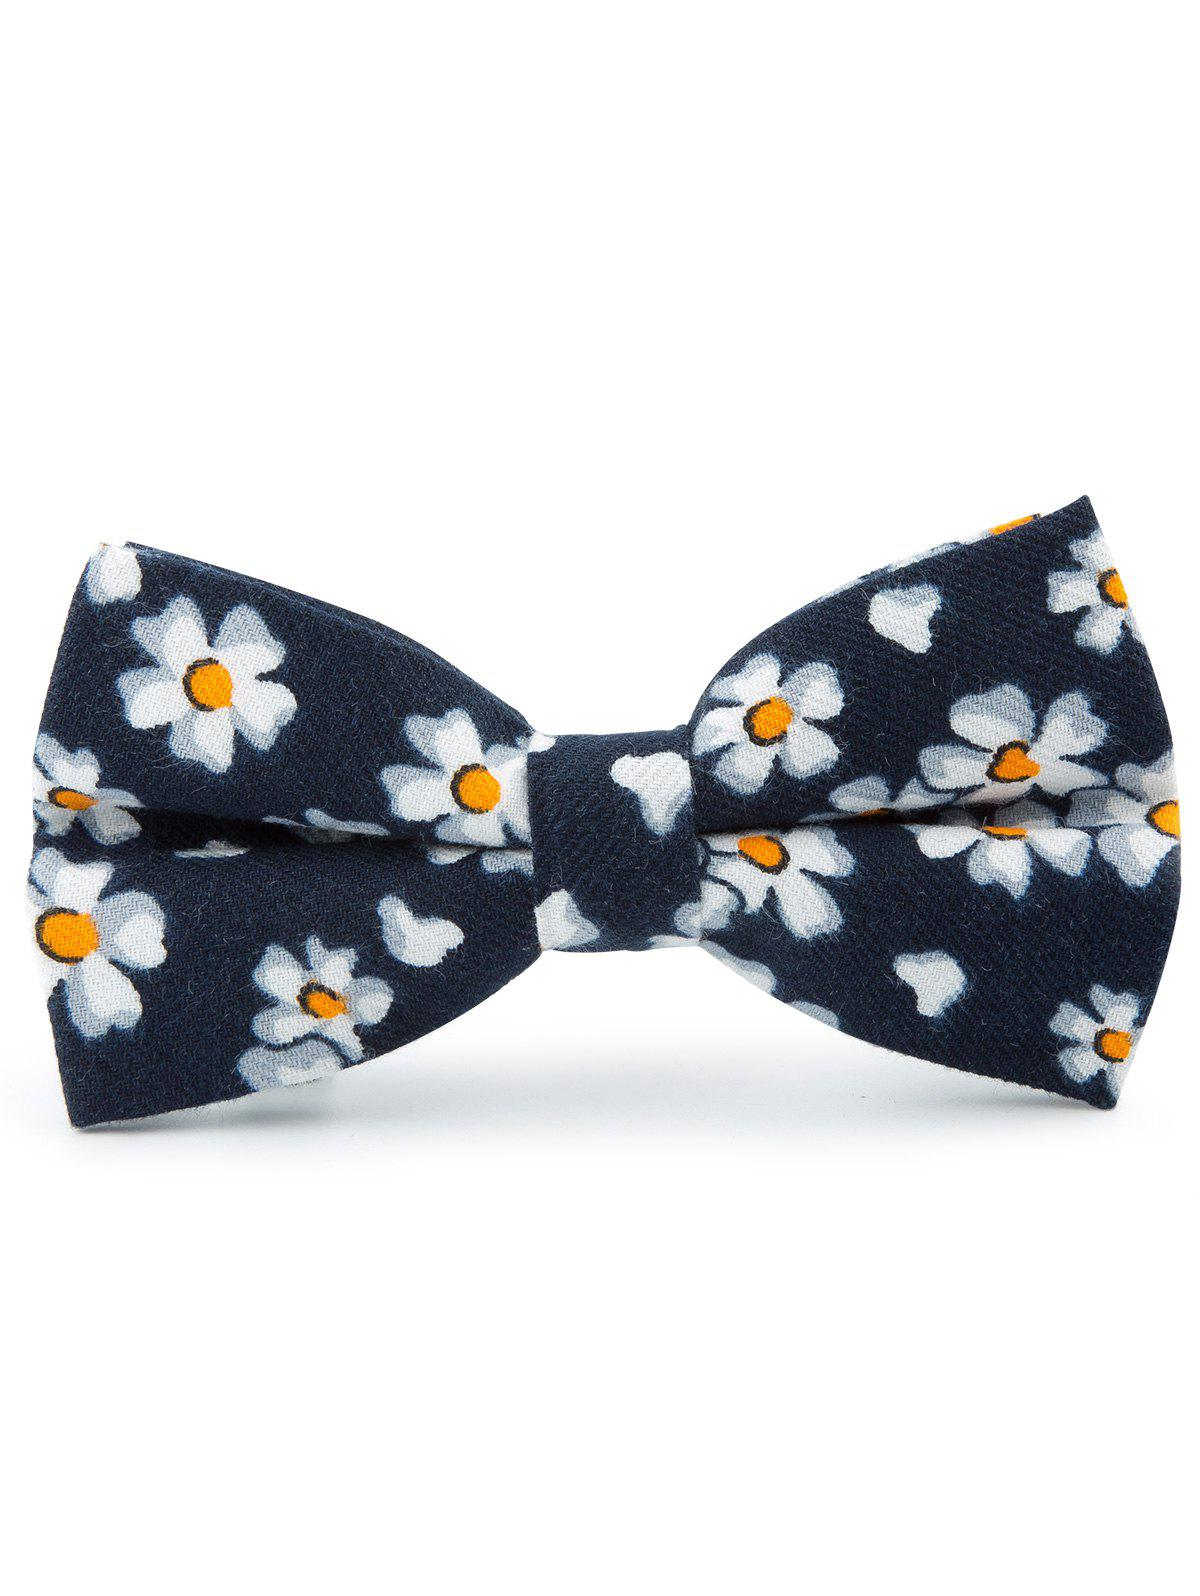 Tiny Flowers Pattern Cotton Blend Bow Tie - Bleu Cadette